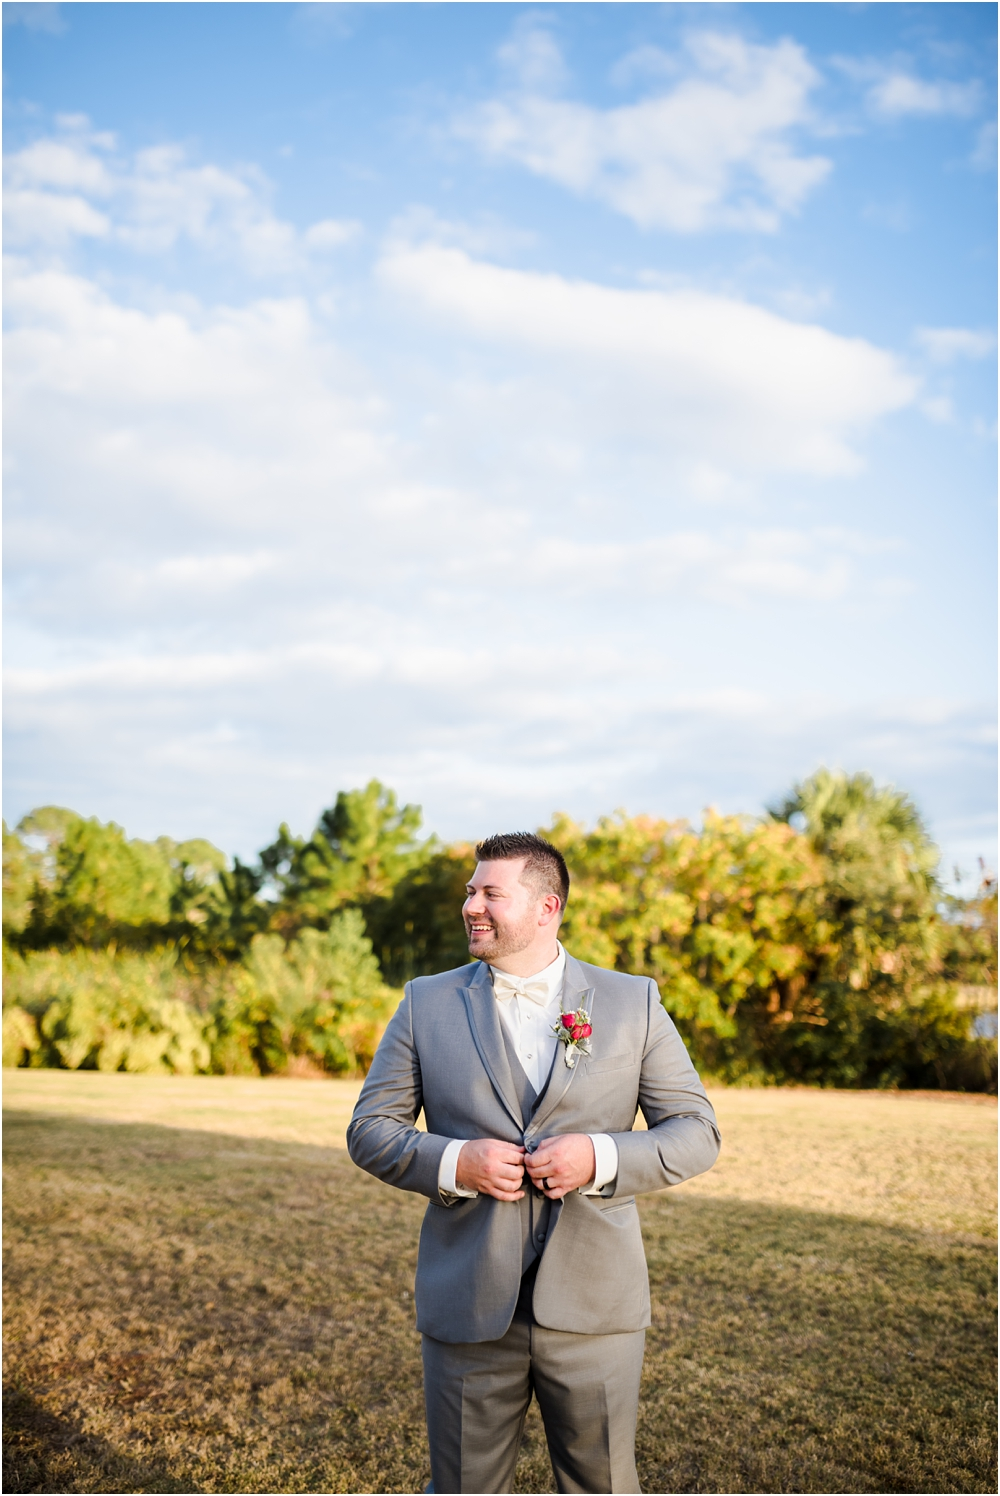 imhof-sheraton-panama-city-beach-florida-wedding-photographer-kiersten-grant-115.jpg